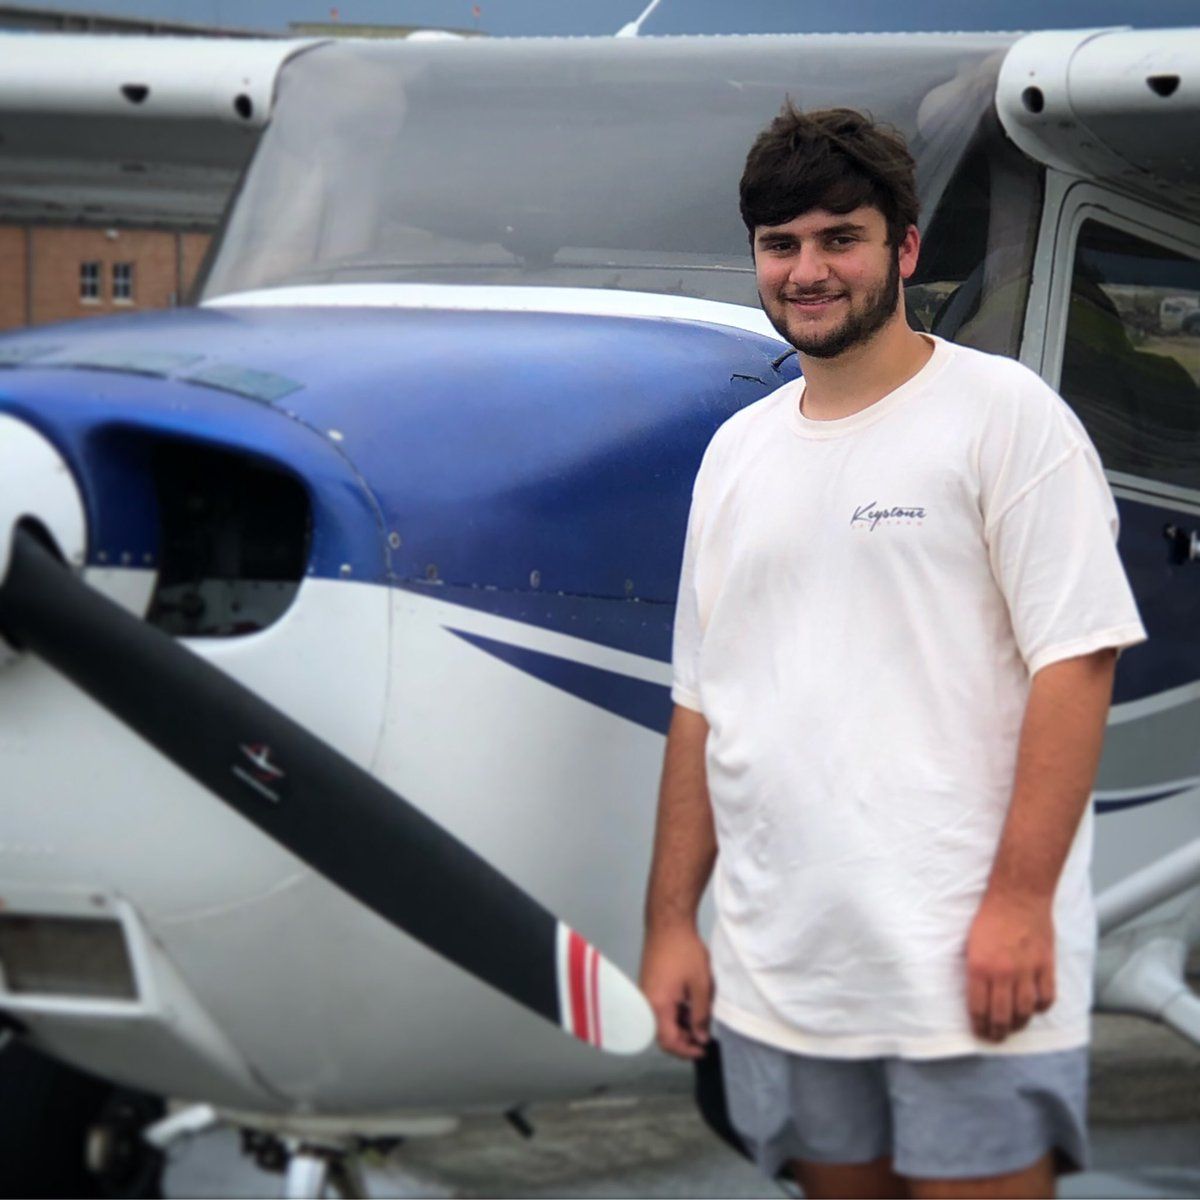 Congratulations to our newest Private Pilot Graduate, Kirk!!! 🎉✈️👍 We're so proud of the work you've put in and know you'll soar! #flynola #nolabyair #learntofly #privatepilot #justplanefun #geauxfly #aviation #avgeek #graduate https://t.co/bzBHL7YJaj